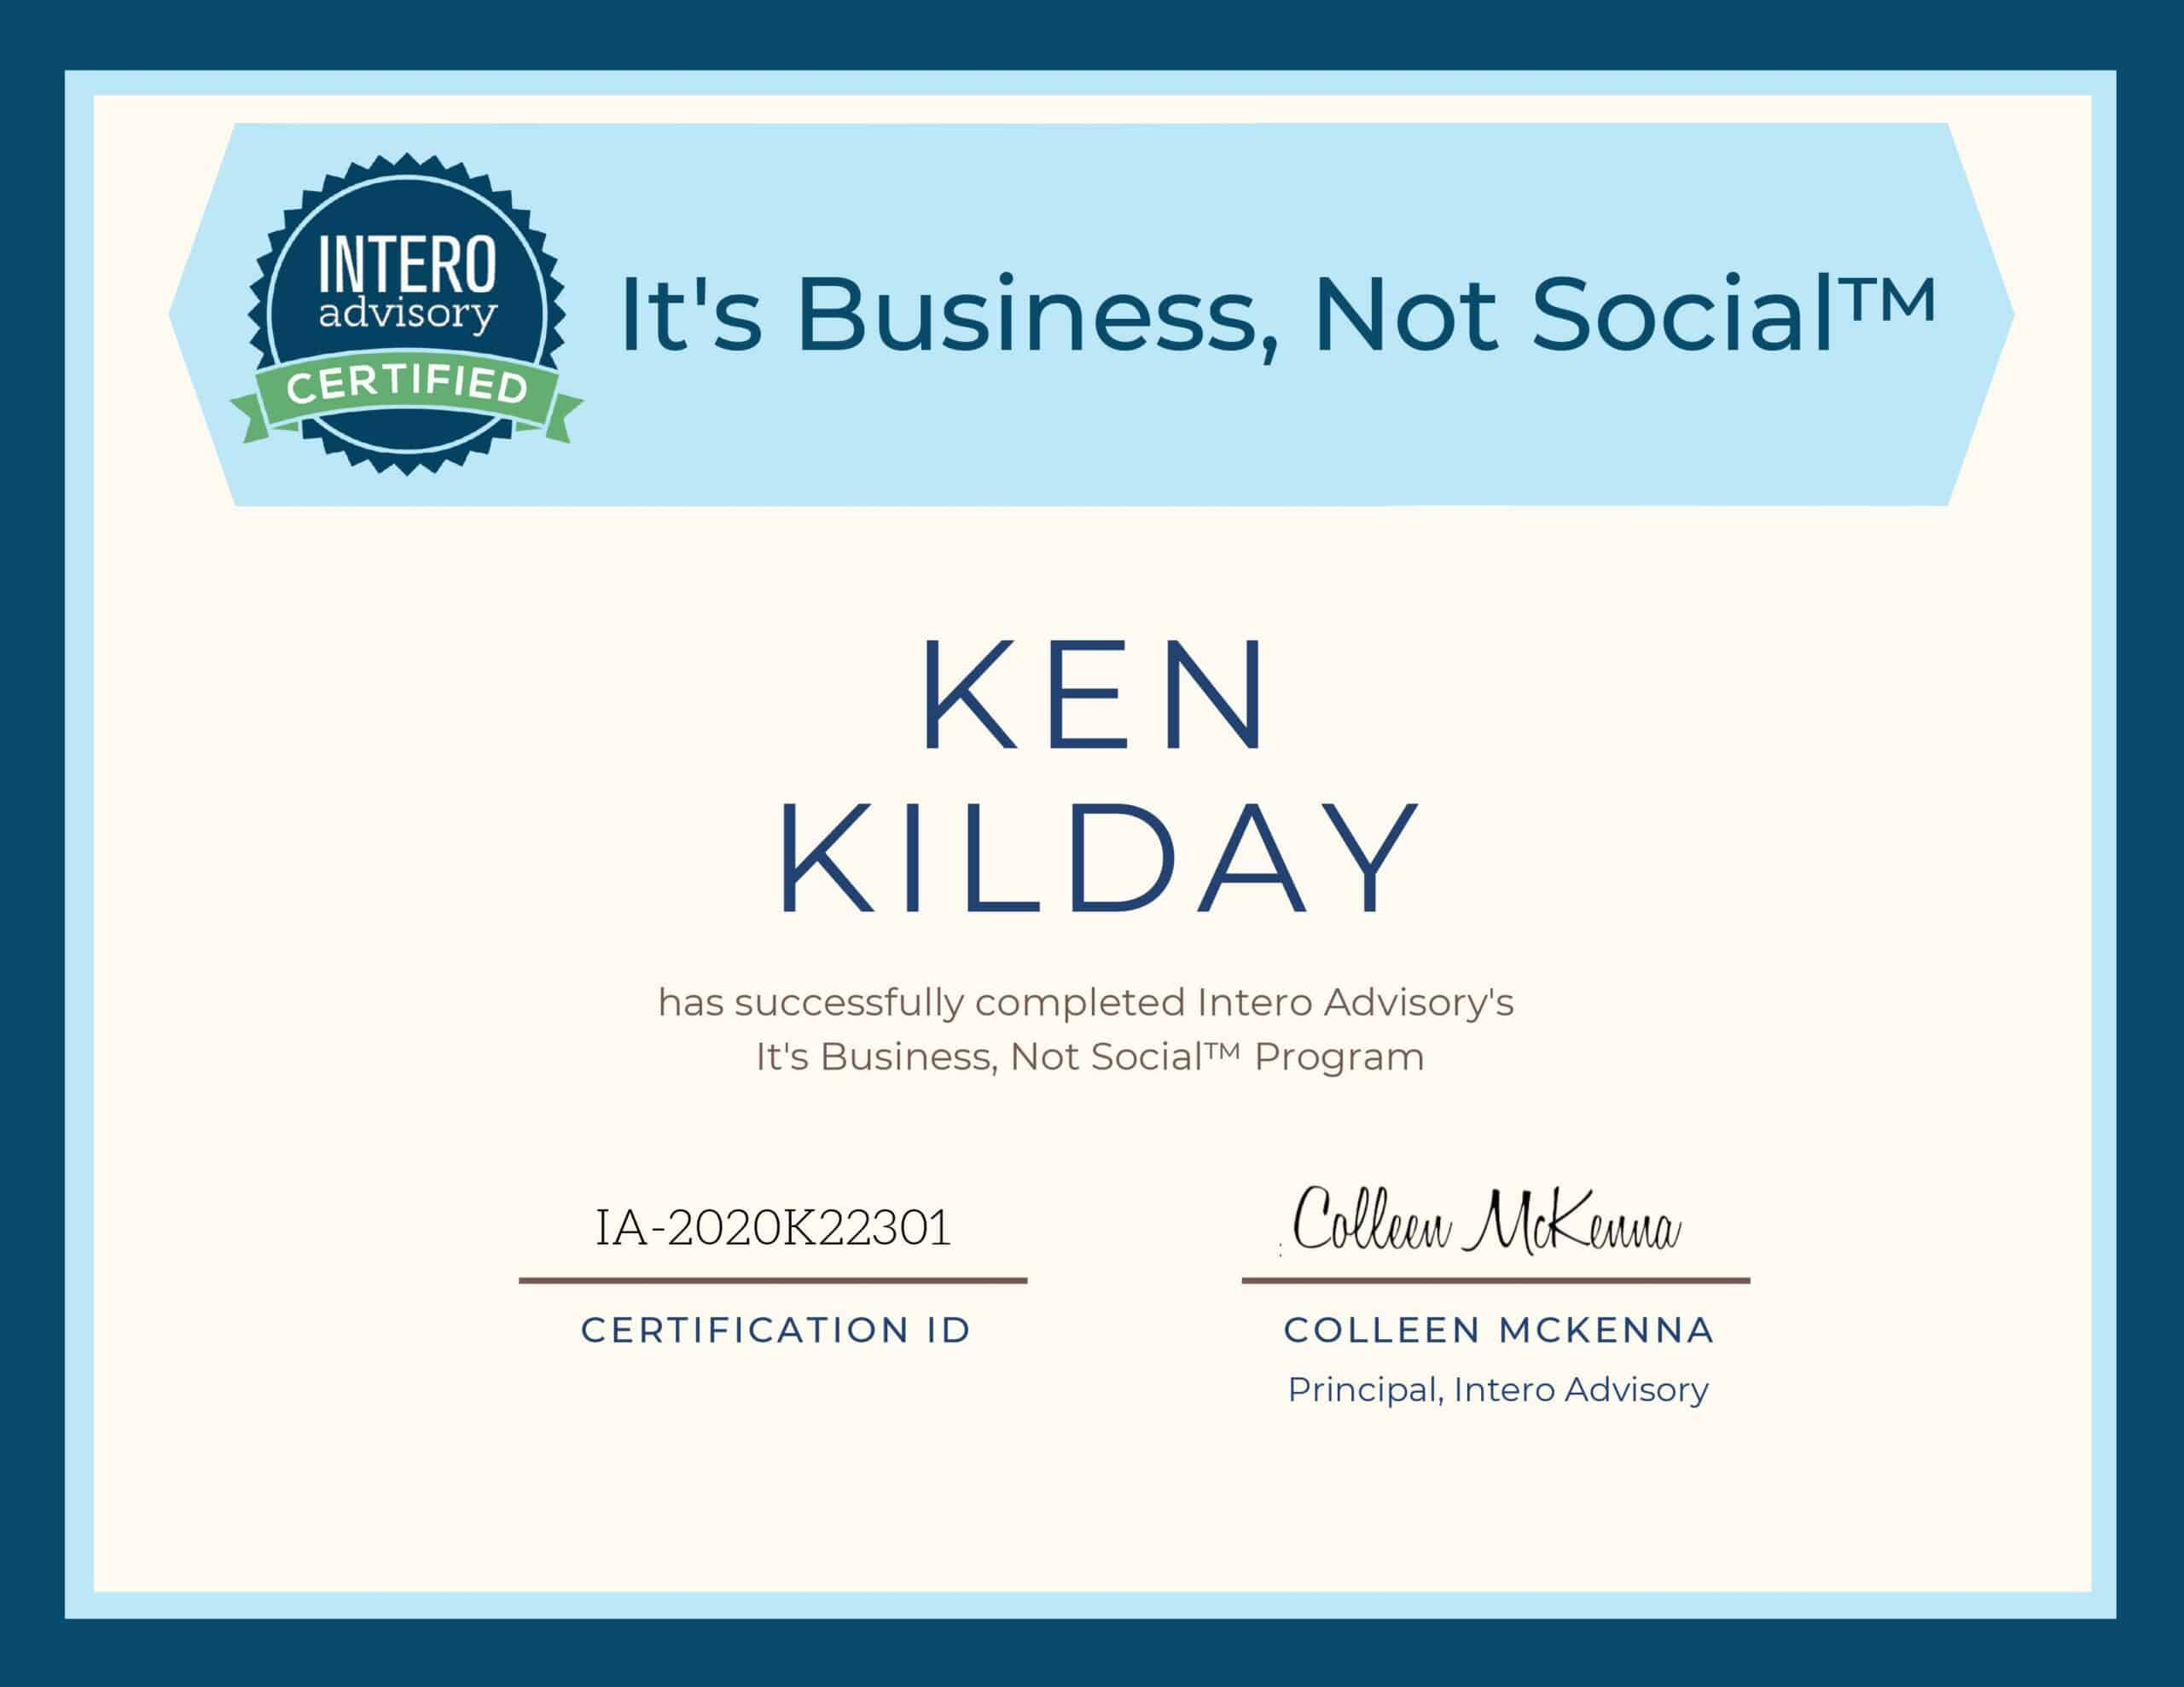 Intero Advisory It's Business not Social Certificate